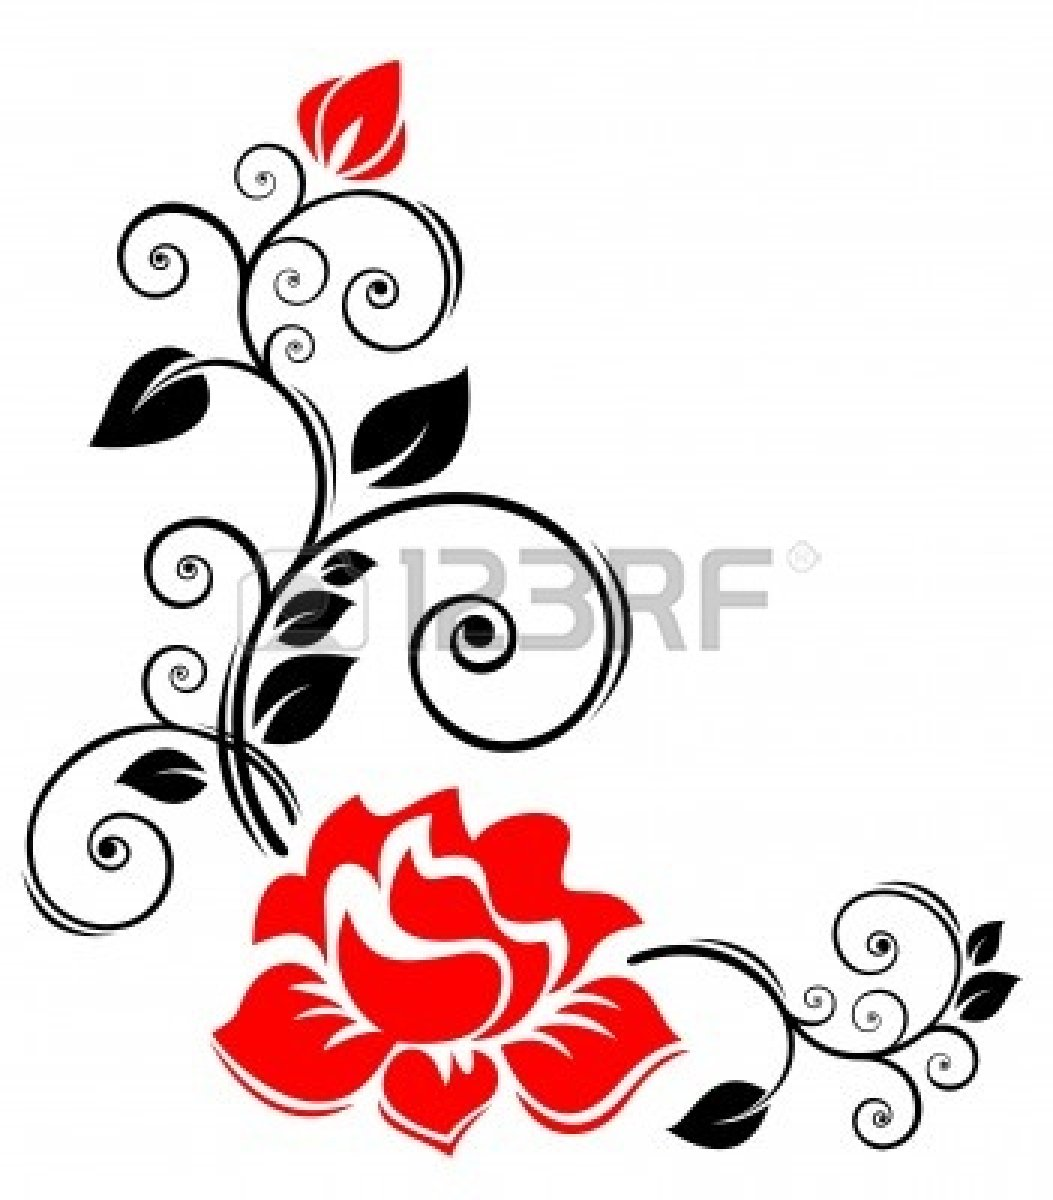 Black And White Rose Border Clip Art 5516127 Stylized Floral Border